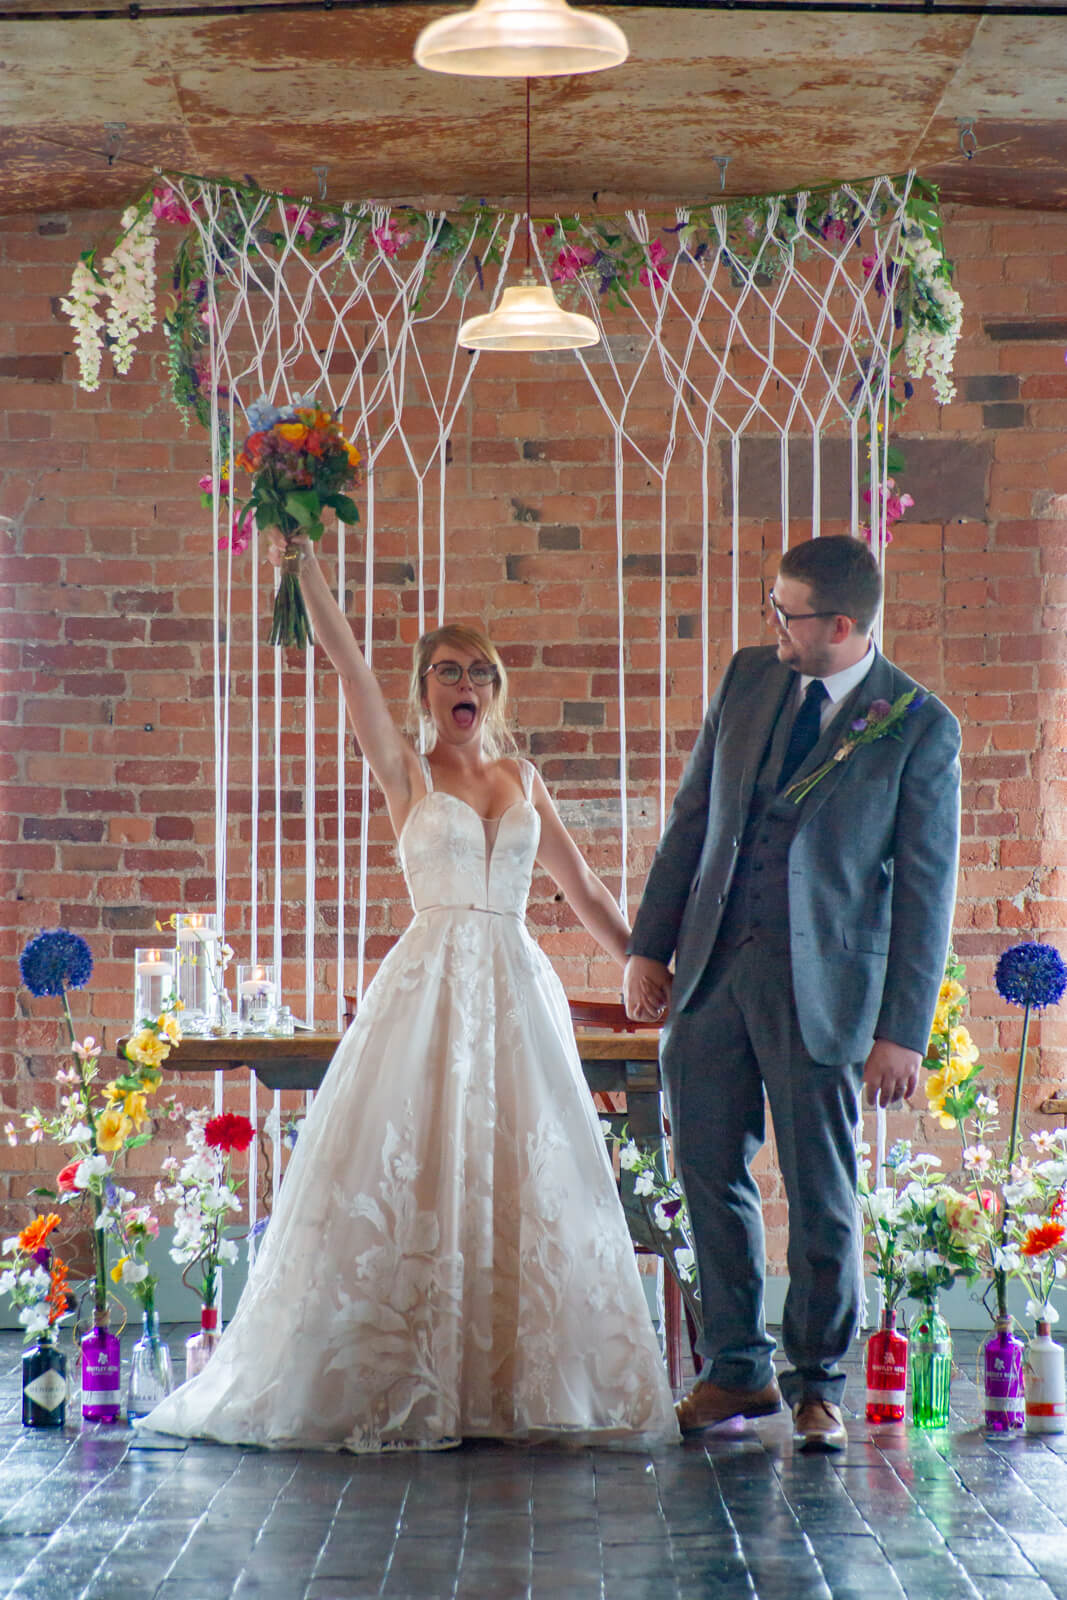 Bride waves her bouquet in the air in celebration